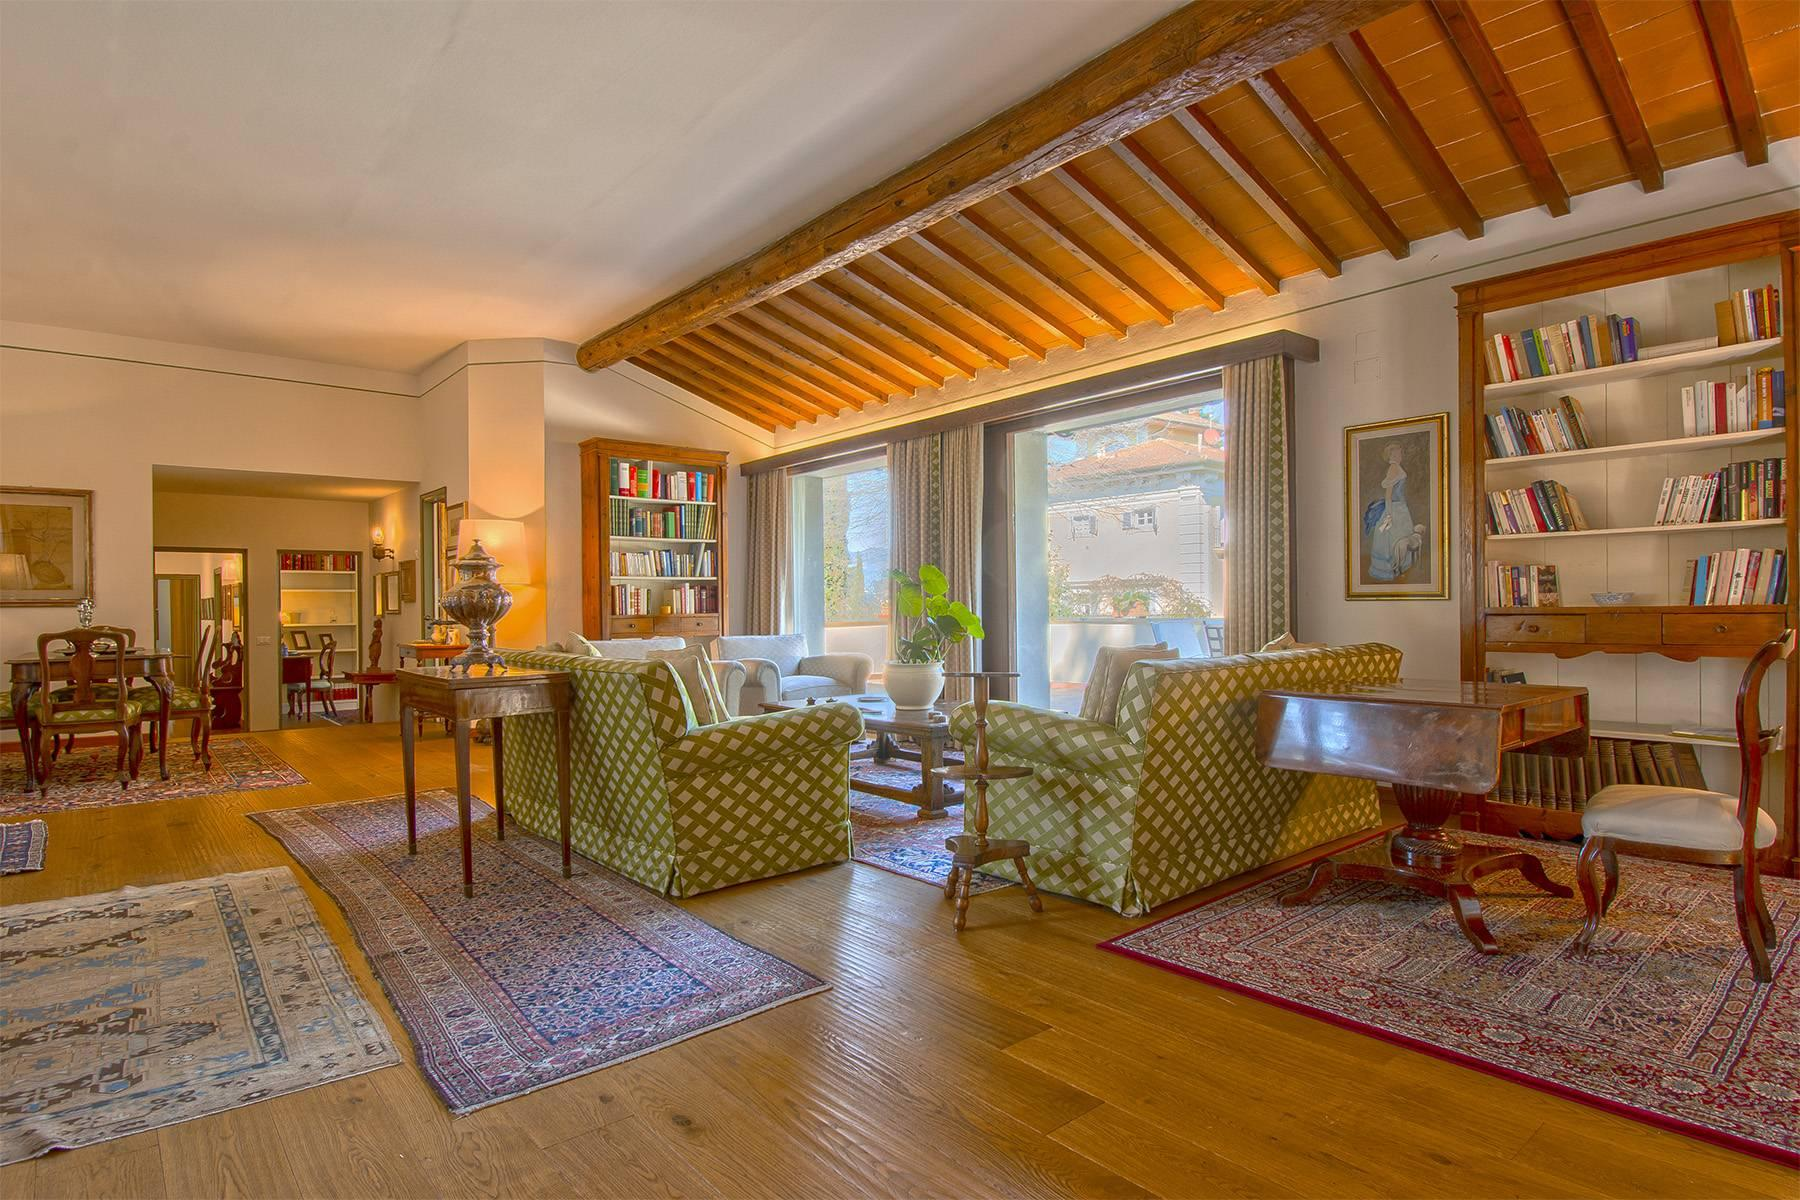 Beautiful renovated apartment with terrace close to Boboli Gardens and Poggio Imperiale - 11